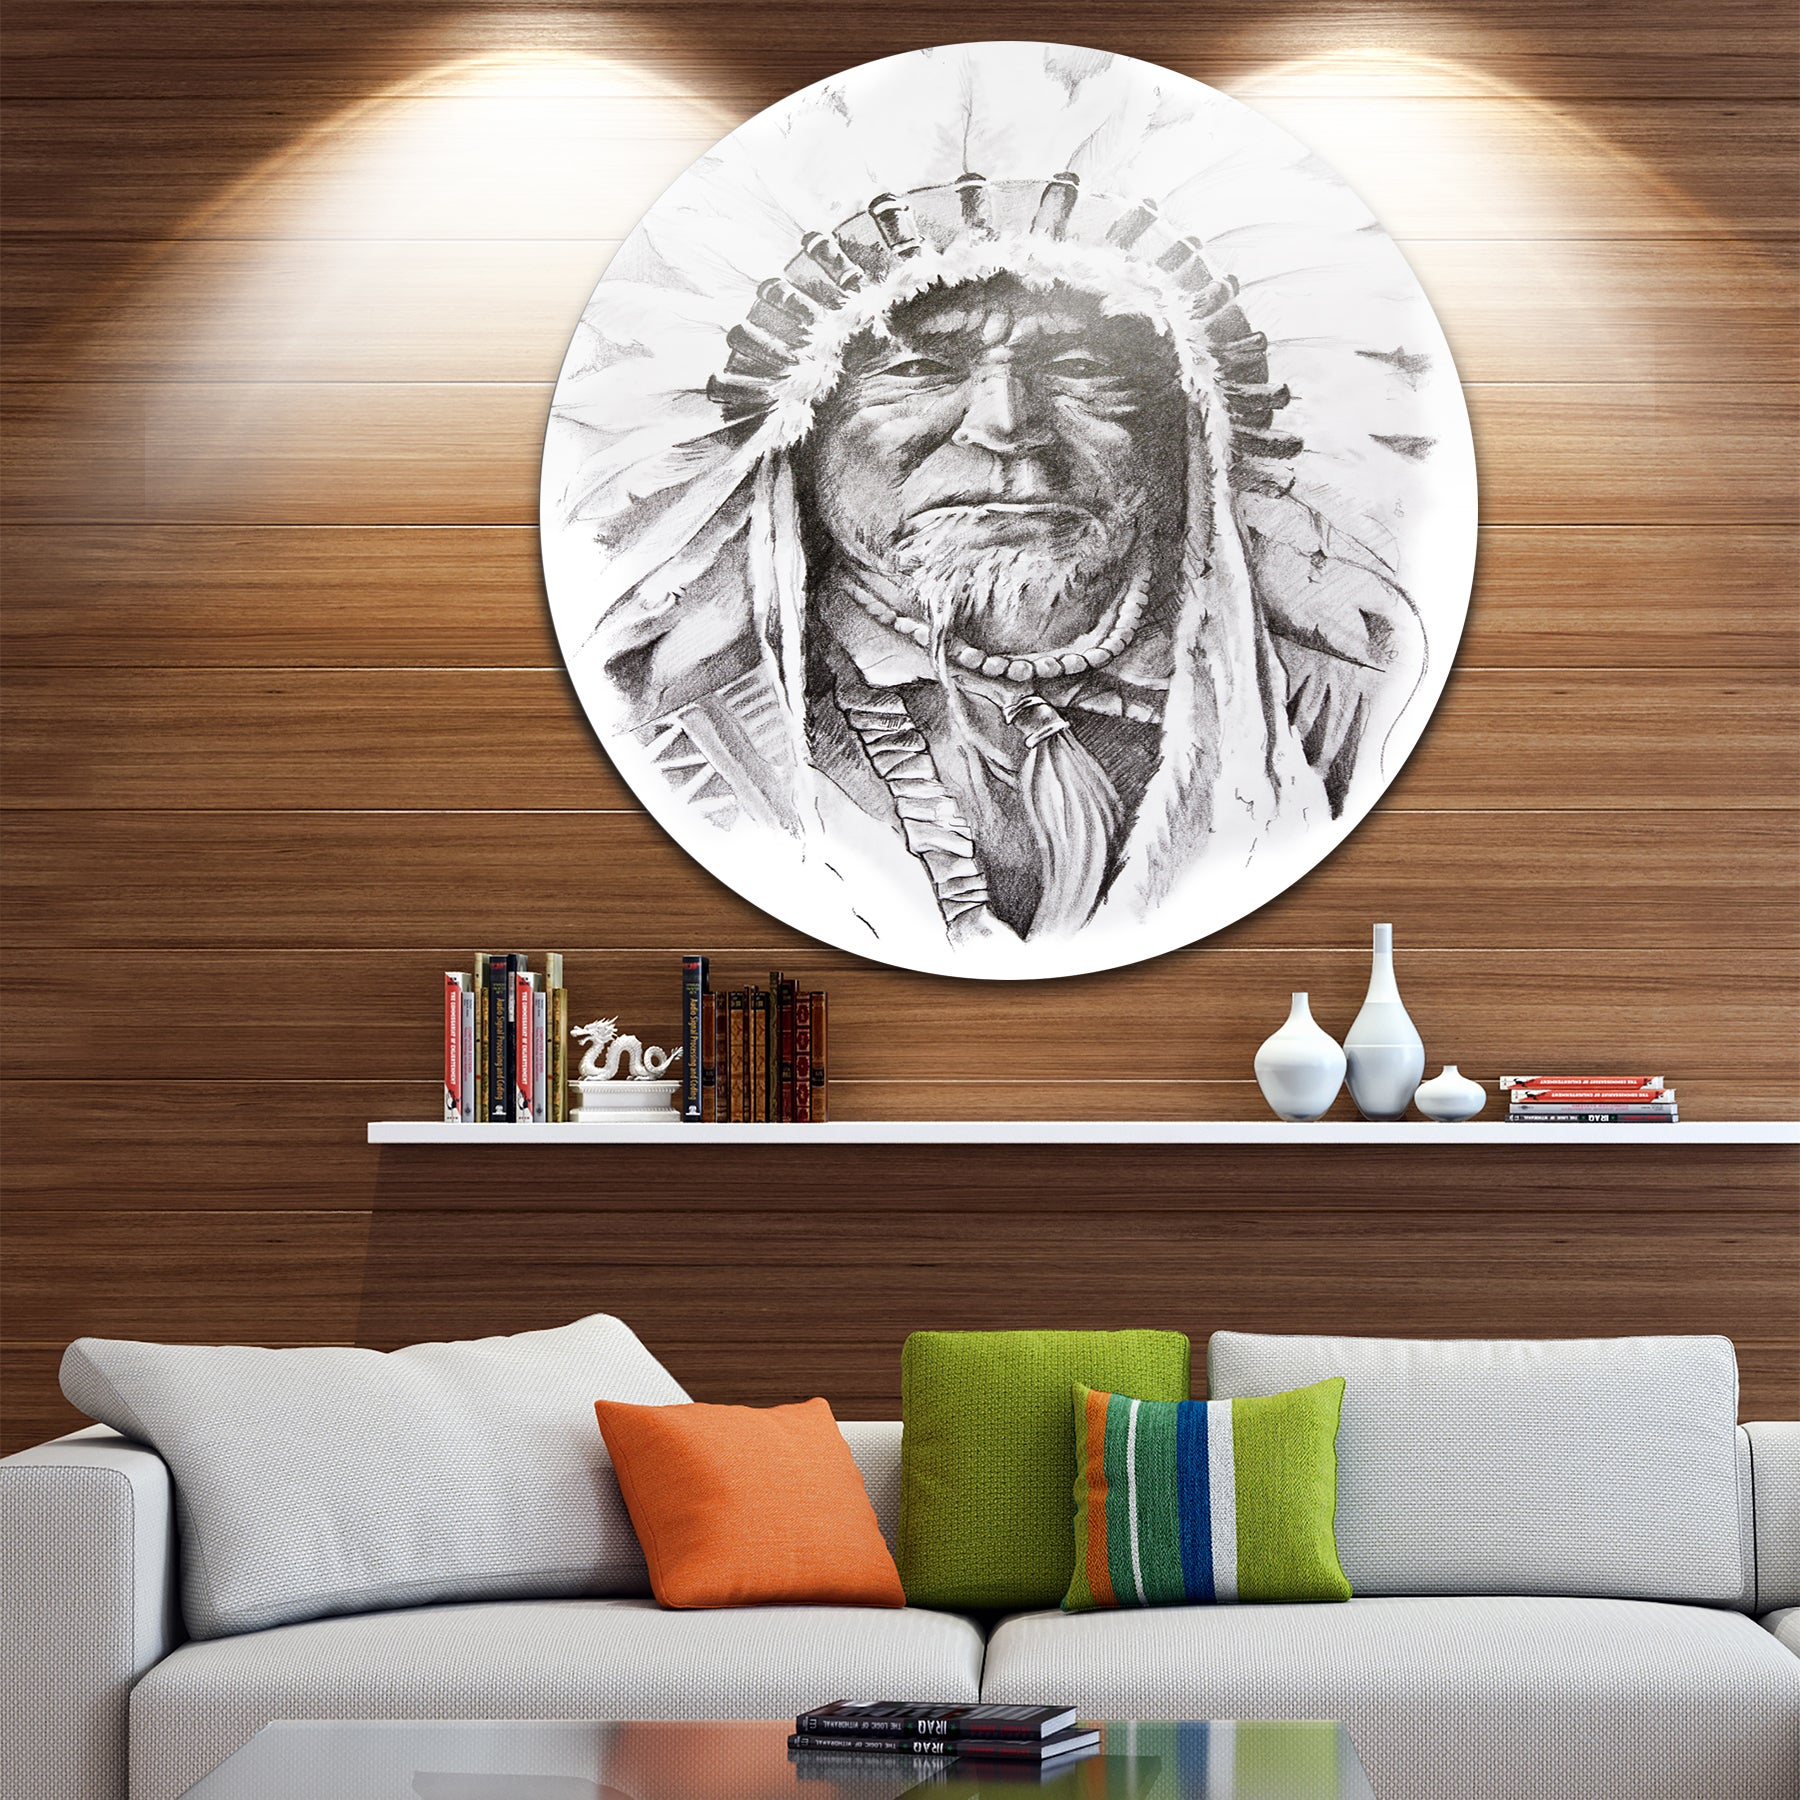 Designart Native American Indian Portrait Glossy Large Disk Metal Wall Art On Free Shipping Today 14185043